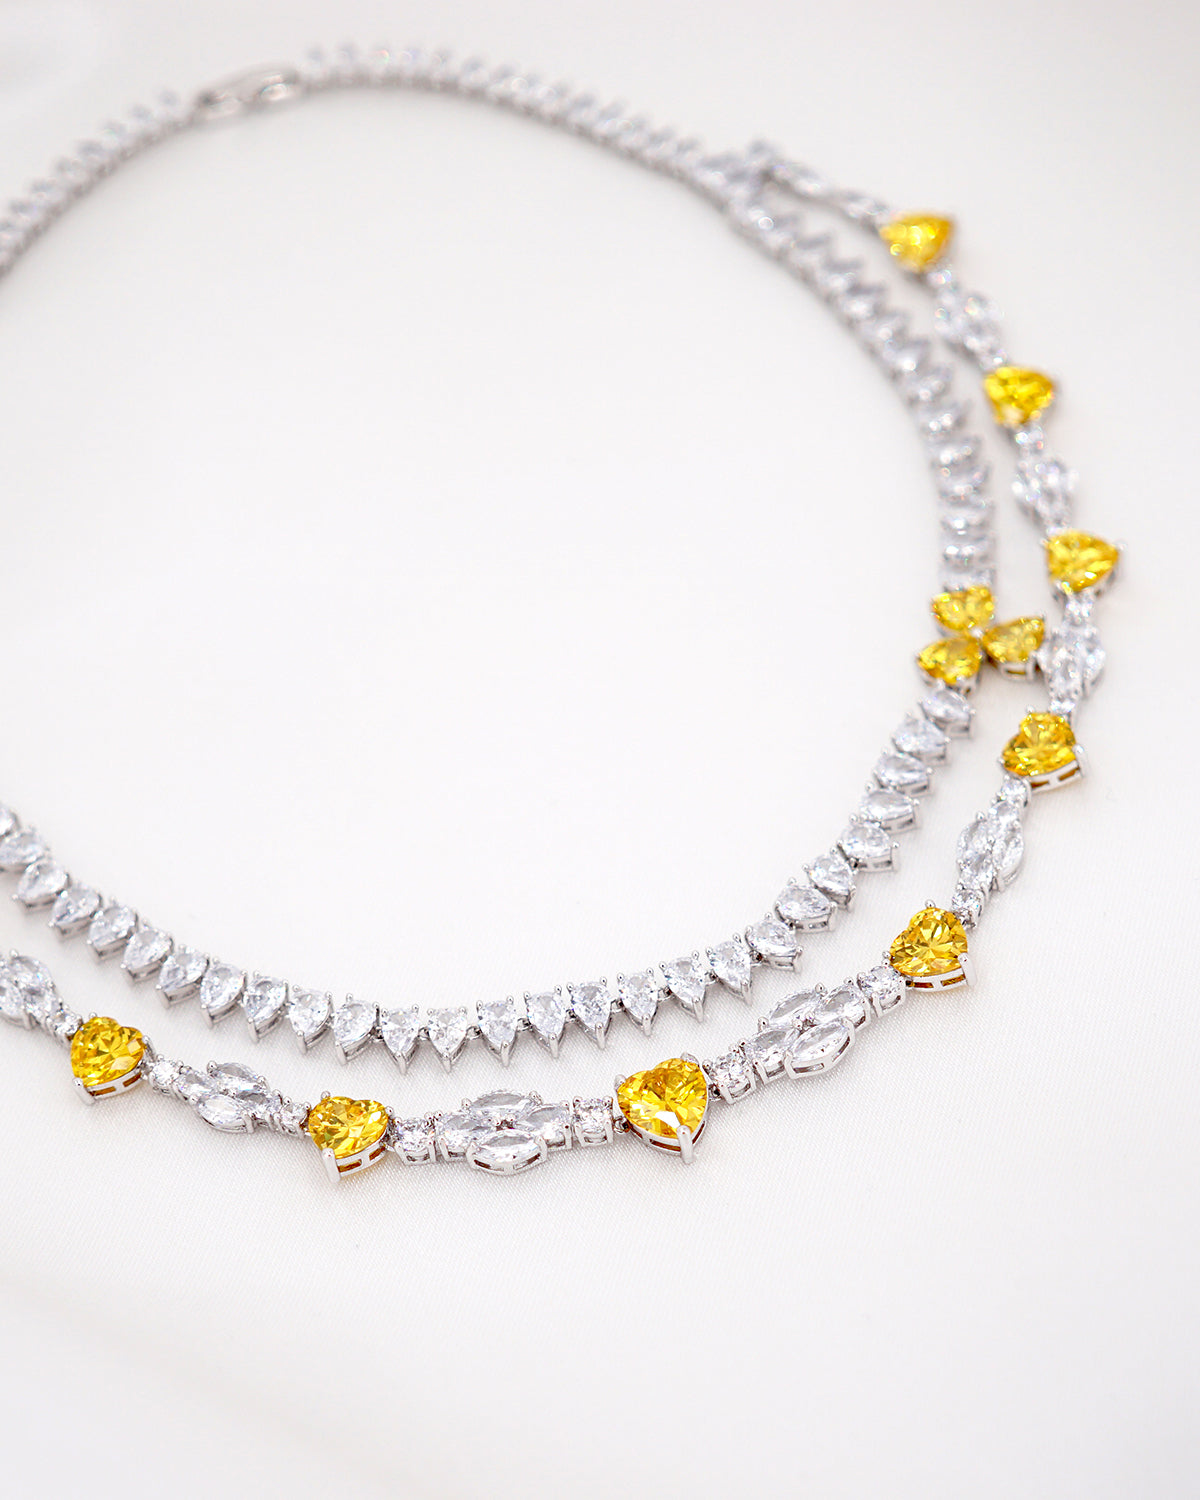 Statement Topaz Heart Necklace | Bridal Brides Wedding Jewelry